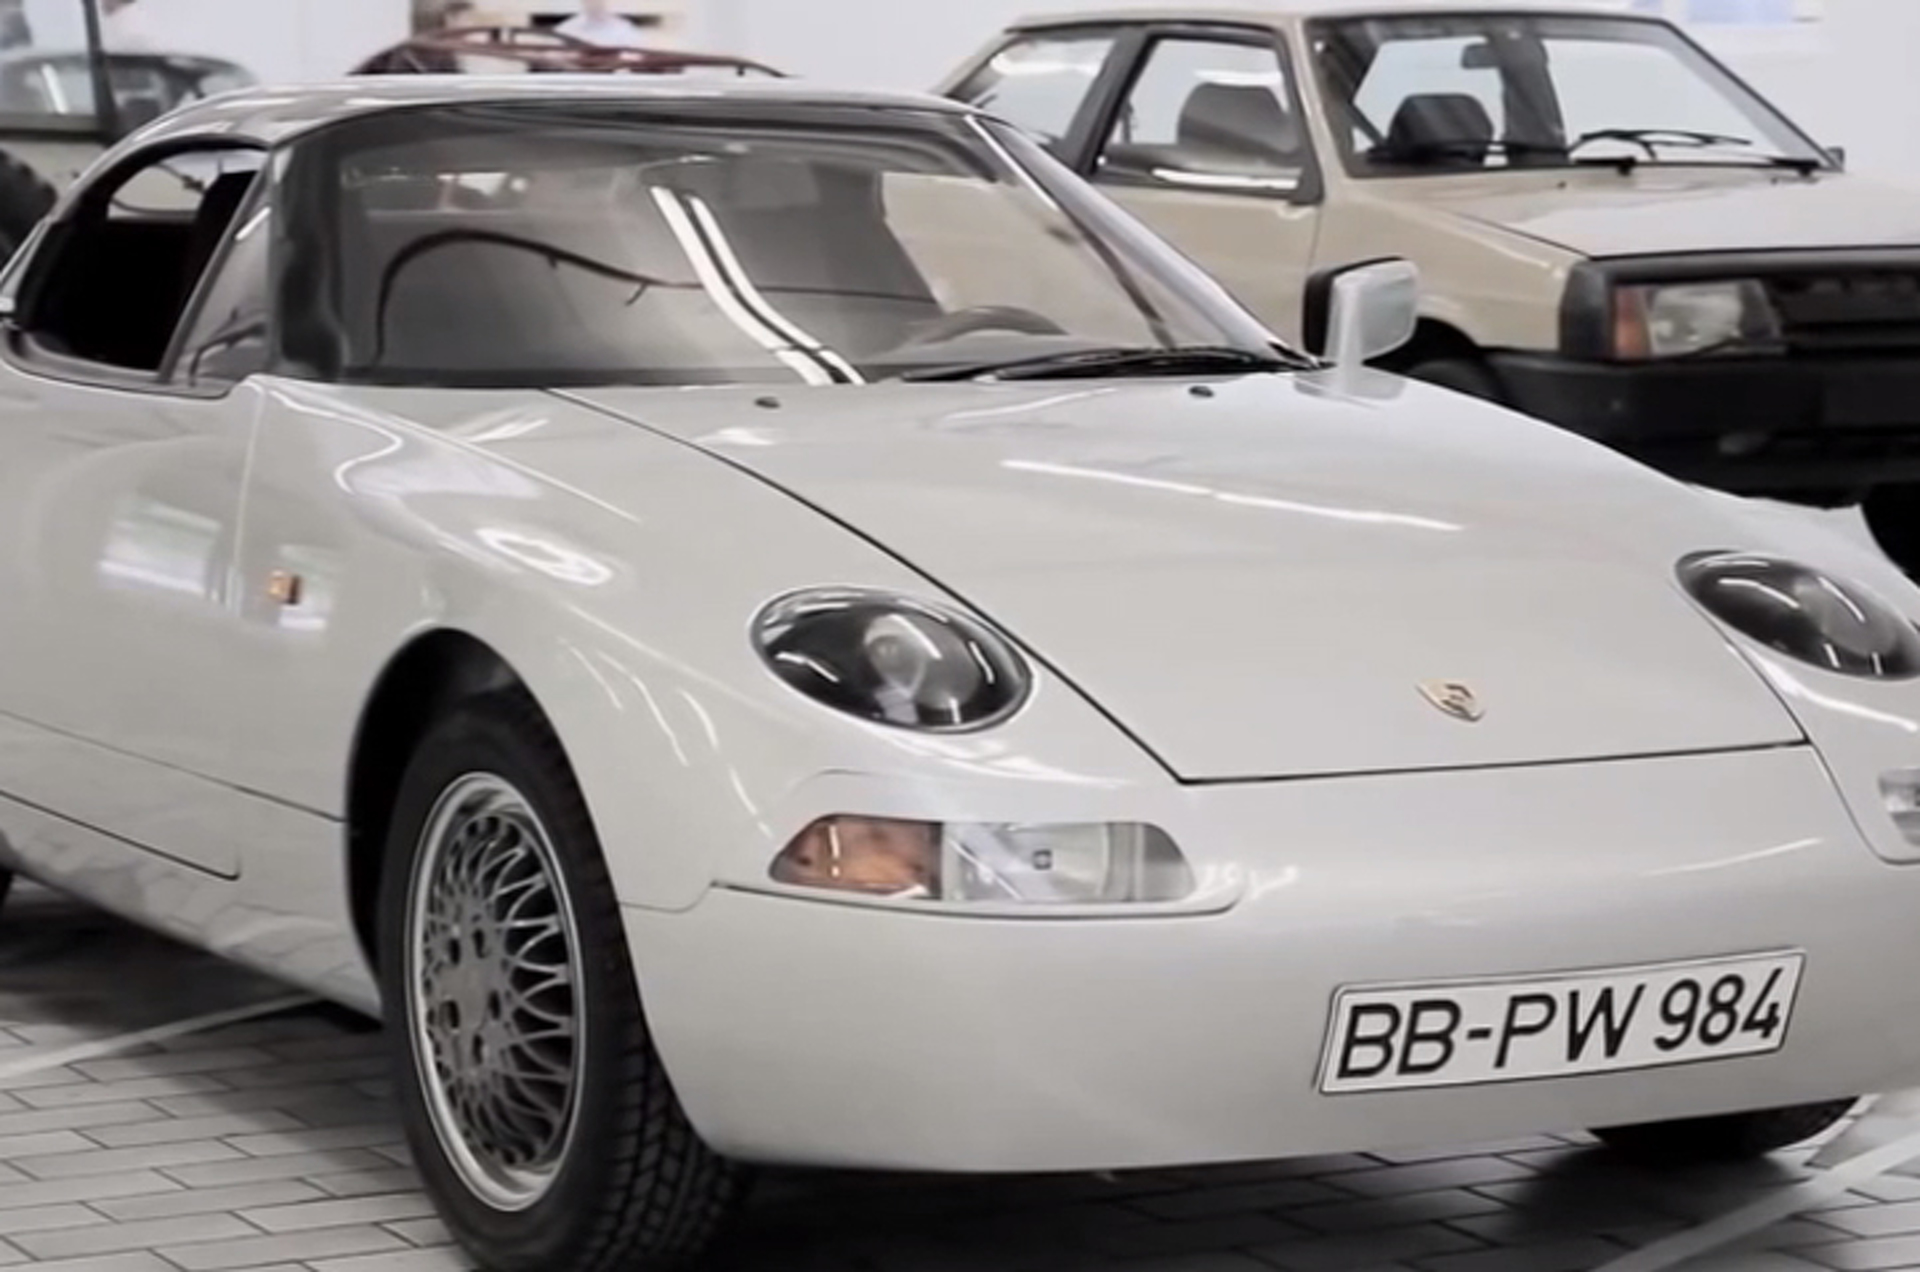 Get a Glimpse at Secrets of the Porsche Warehouse